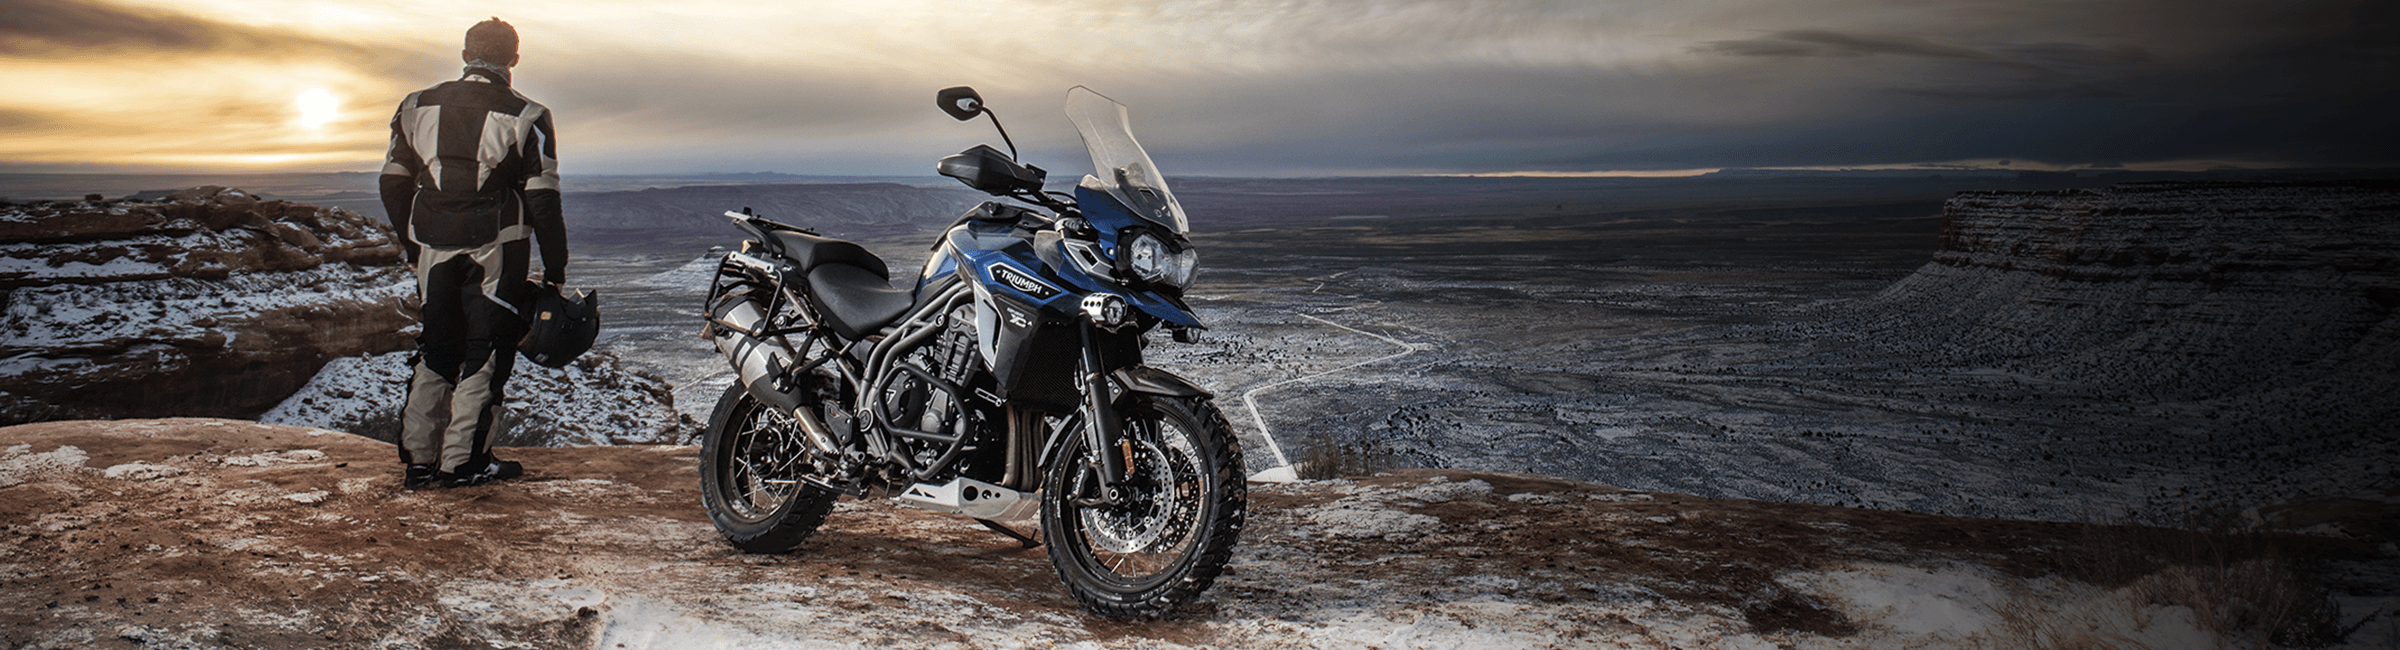 2018 Triumph Spring Unchained